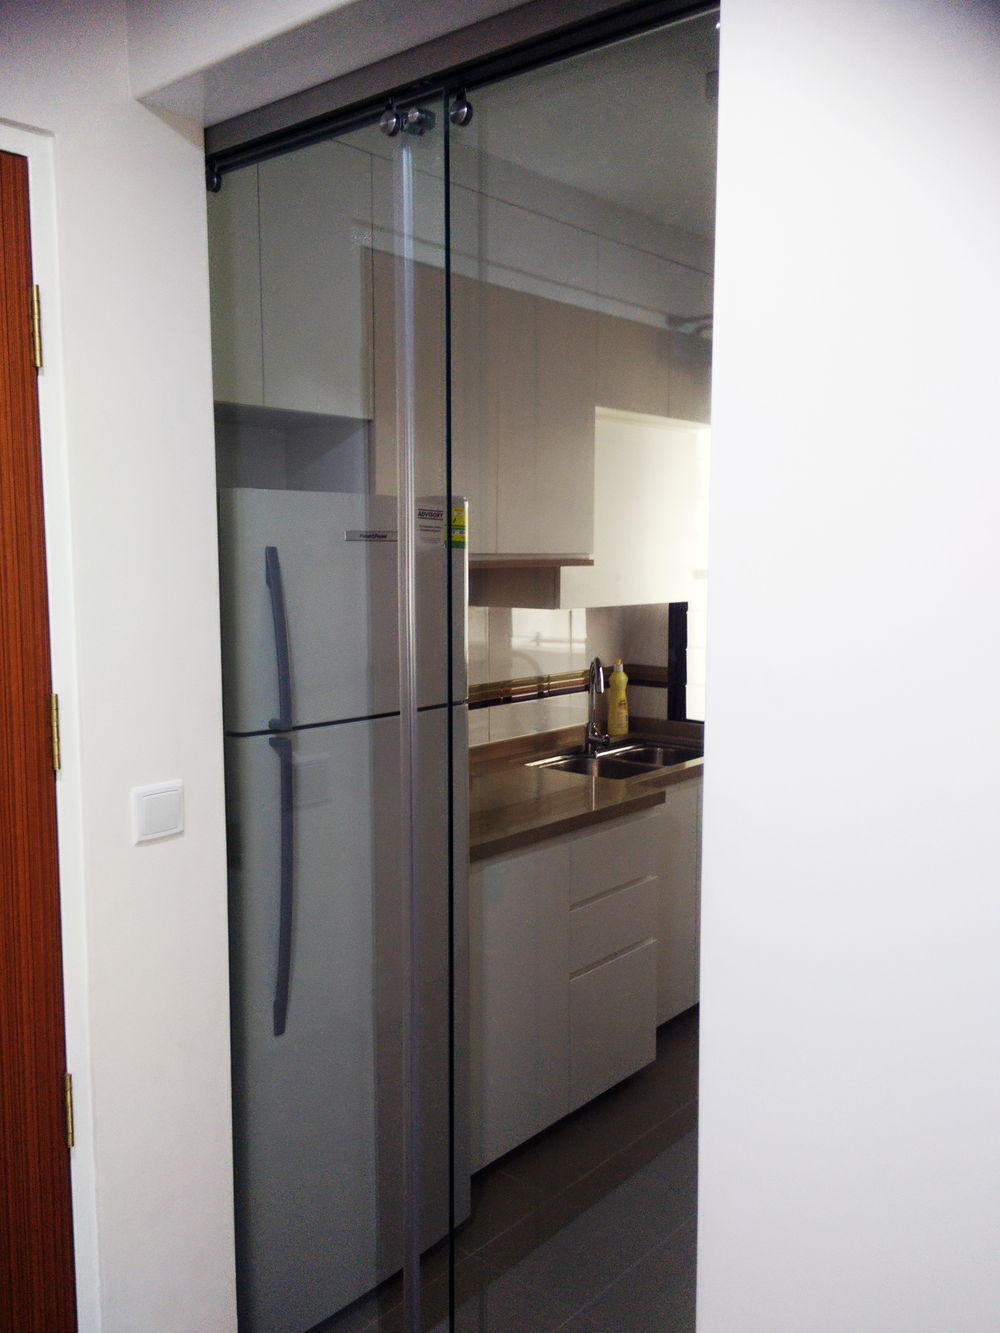 Basic elements for hdb bto 3 rm flat jadier for Sliding glass doors kitchen